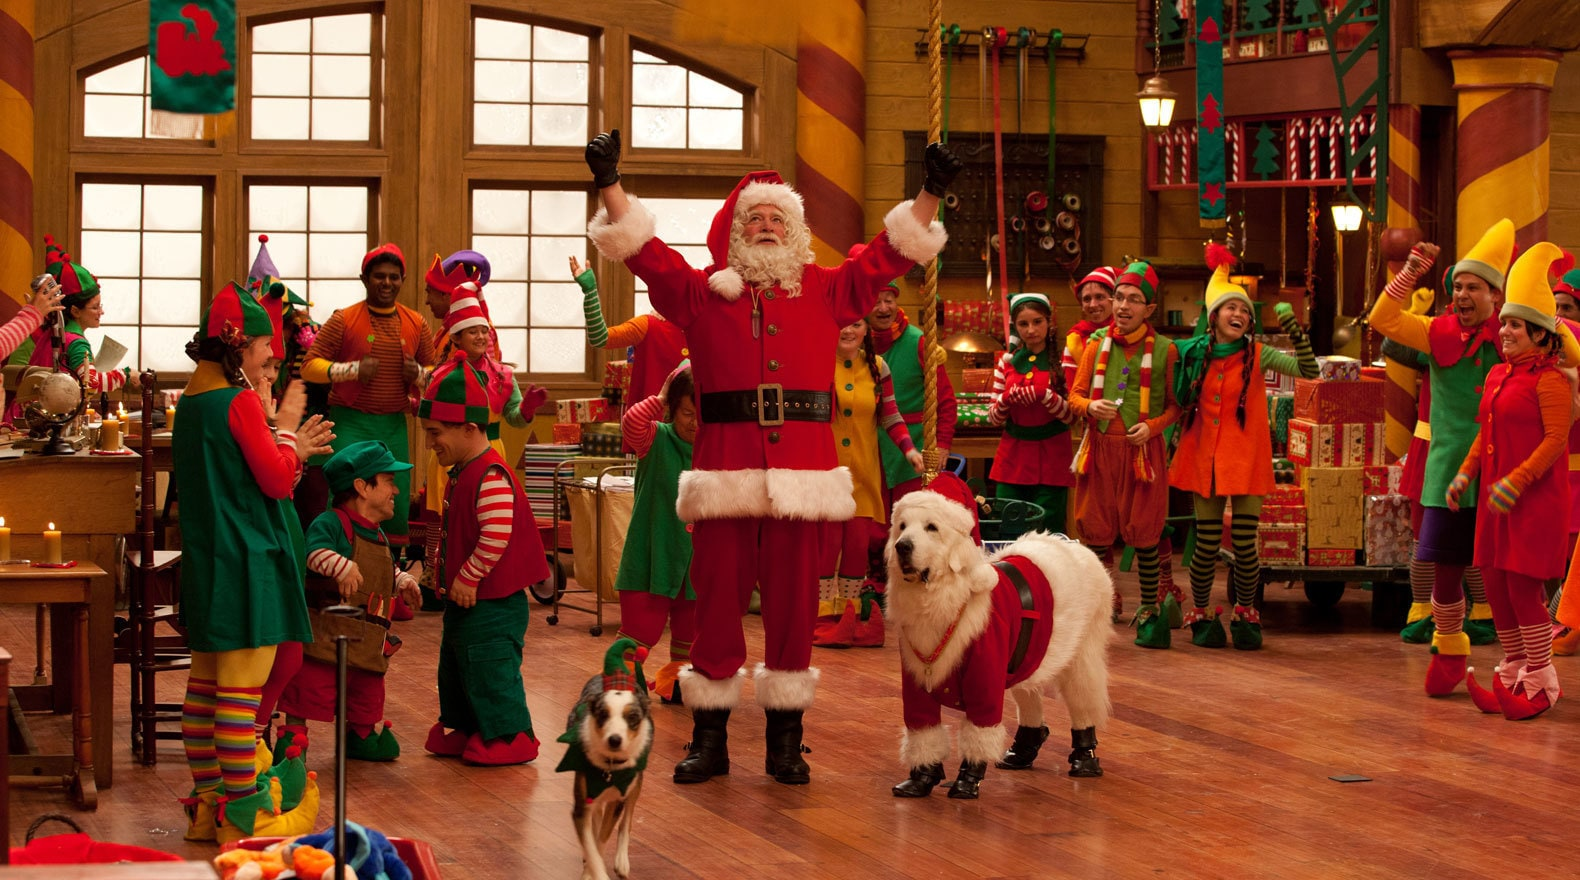 Santa and his Dog in the middle of Santa's workshop